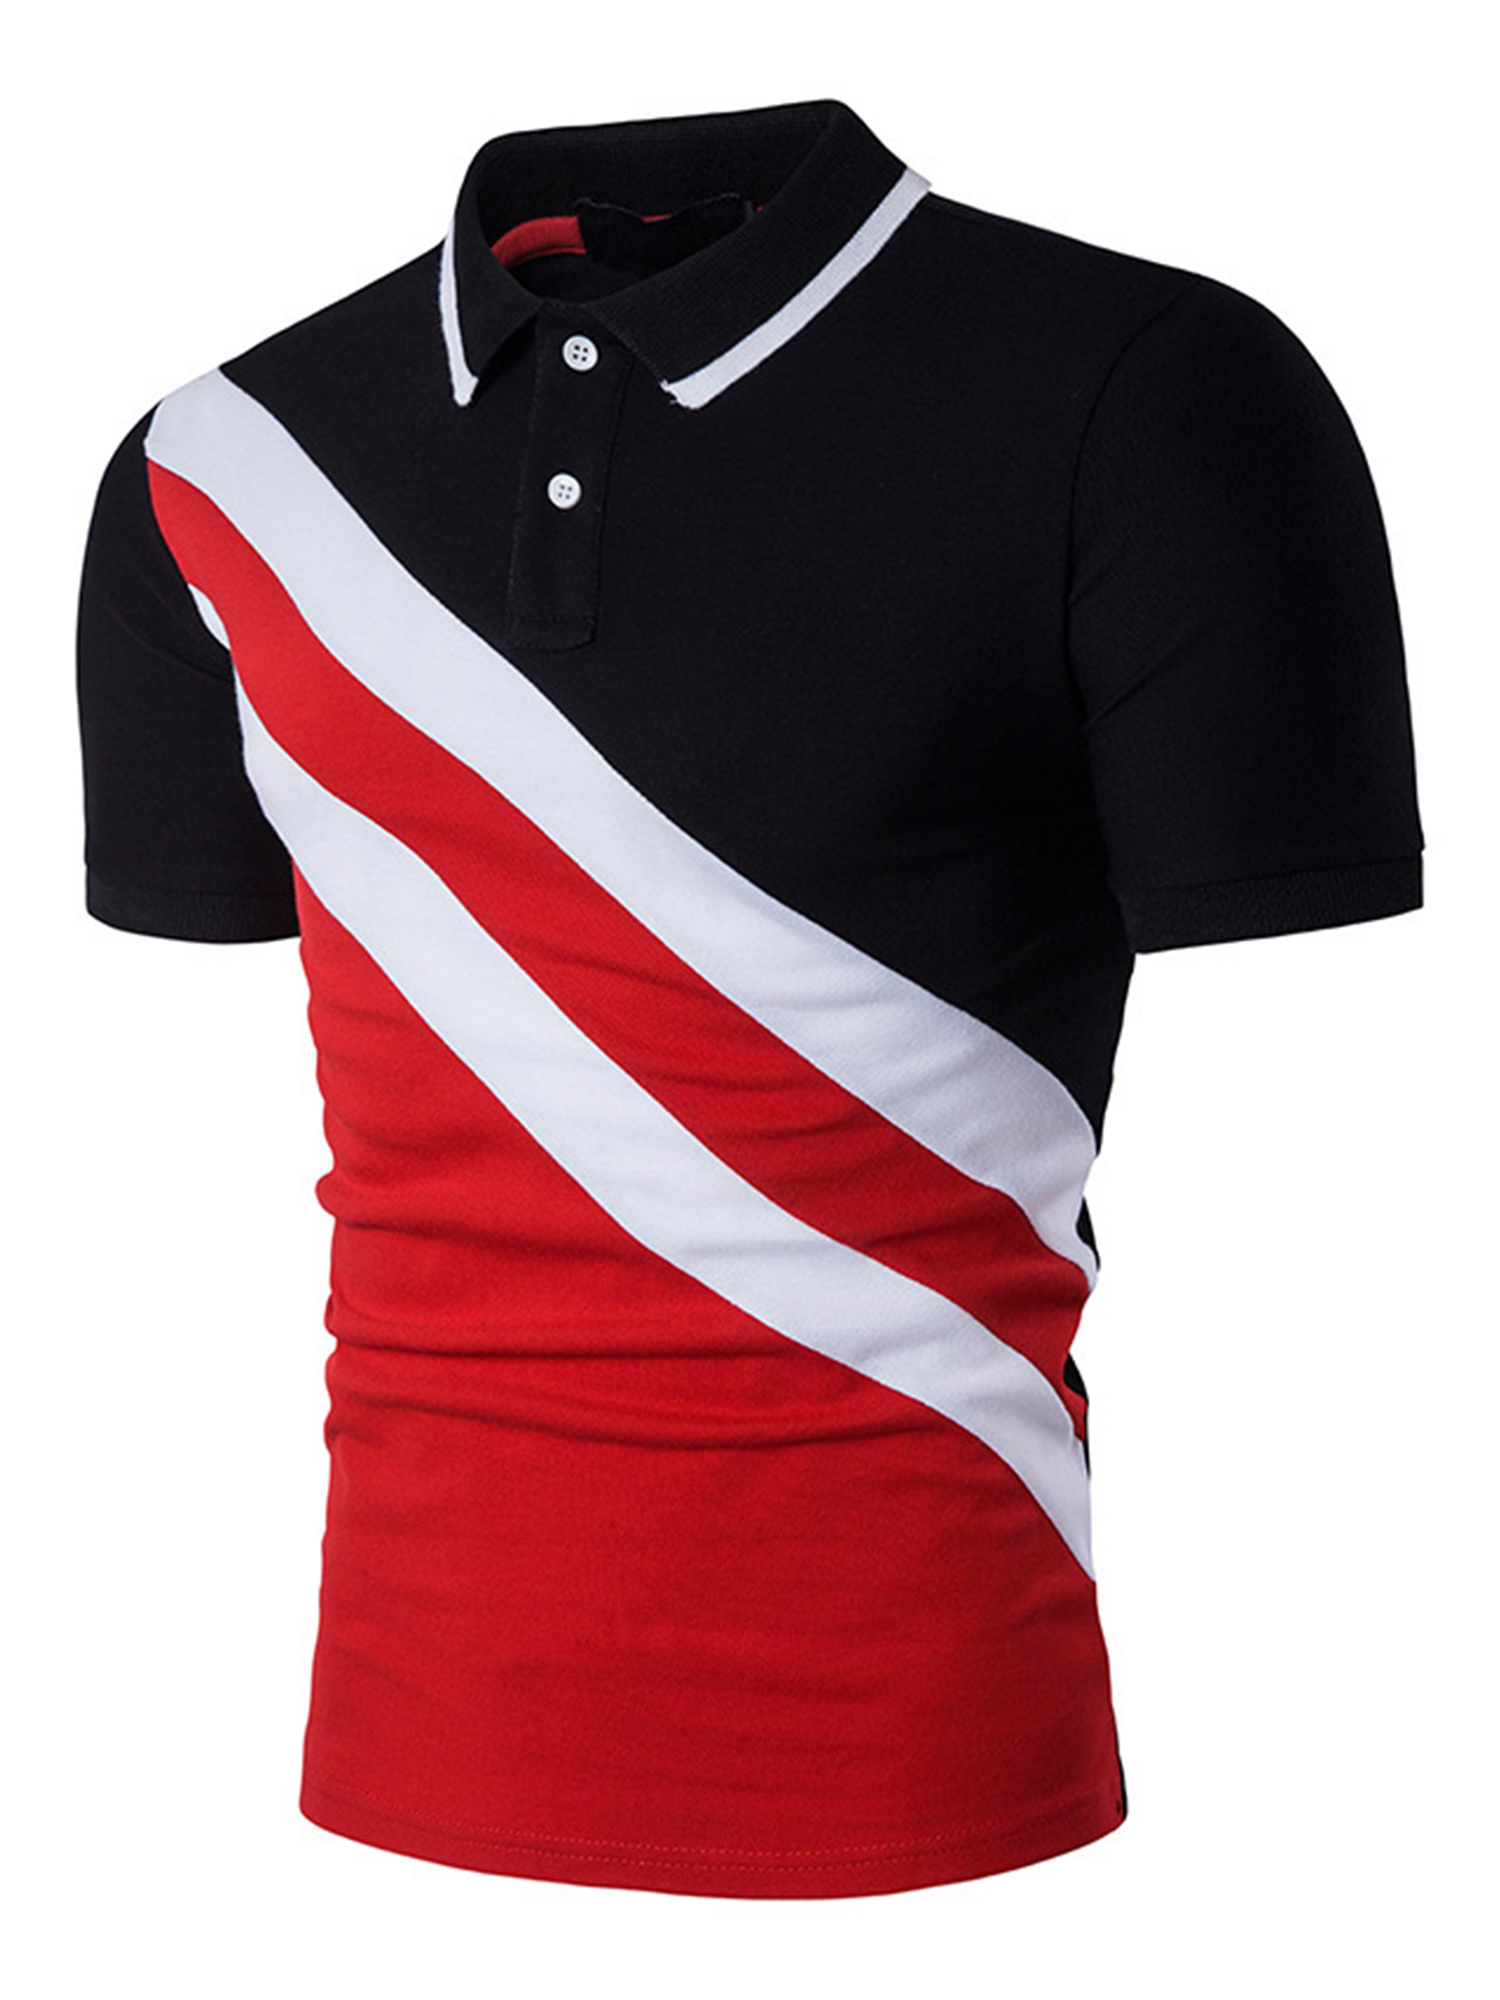 Details about  /NEW LADY/'S NO BOUNDARIES CLASSIC  RED 5 BUTTON SHORT SLEEVE POLO COTTON  SHIRT